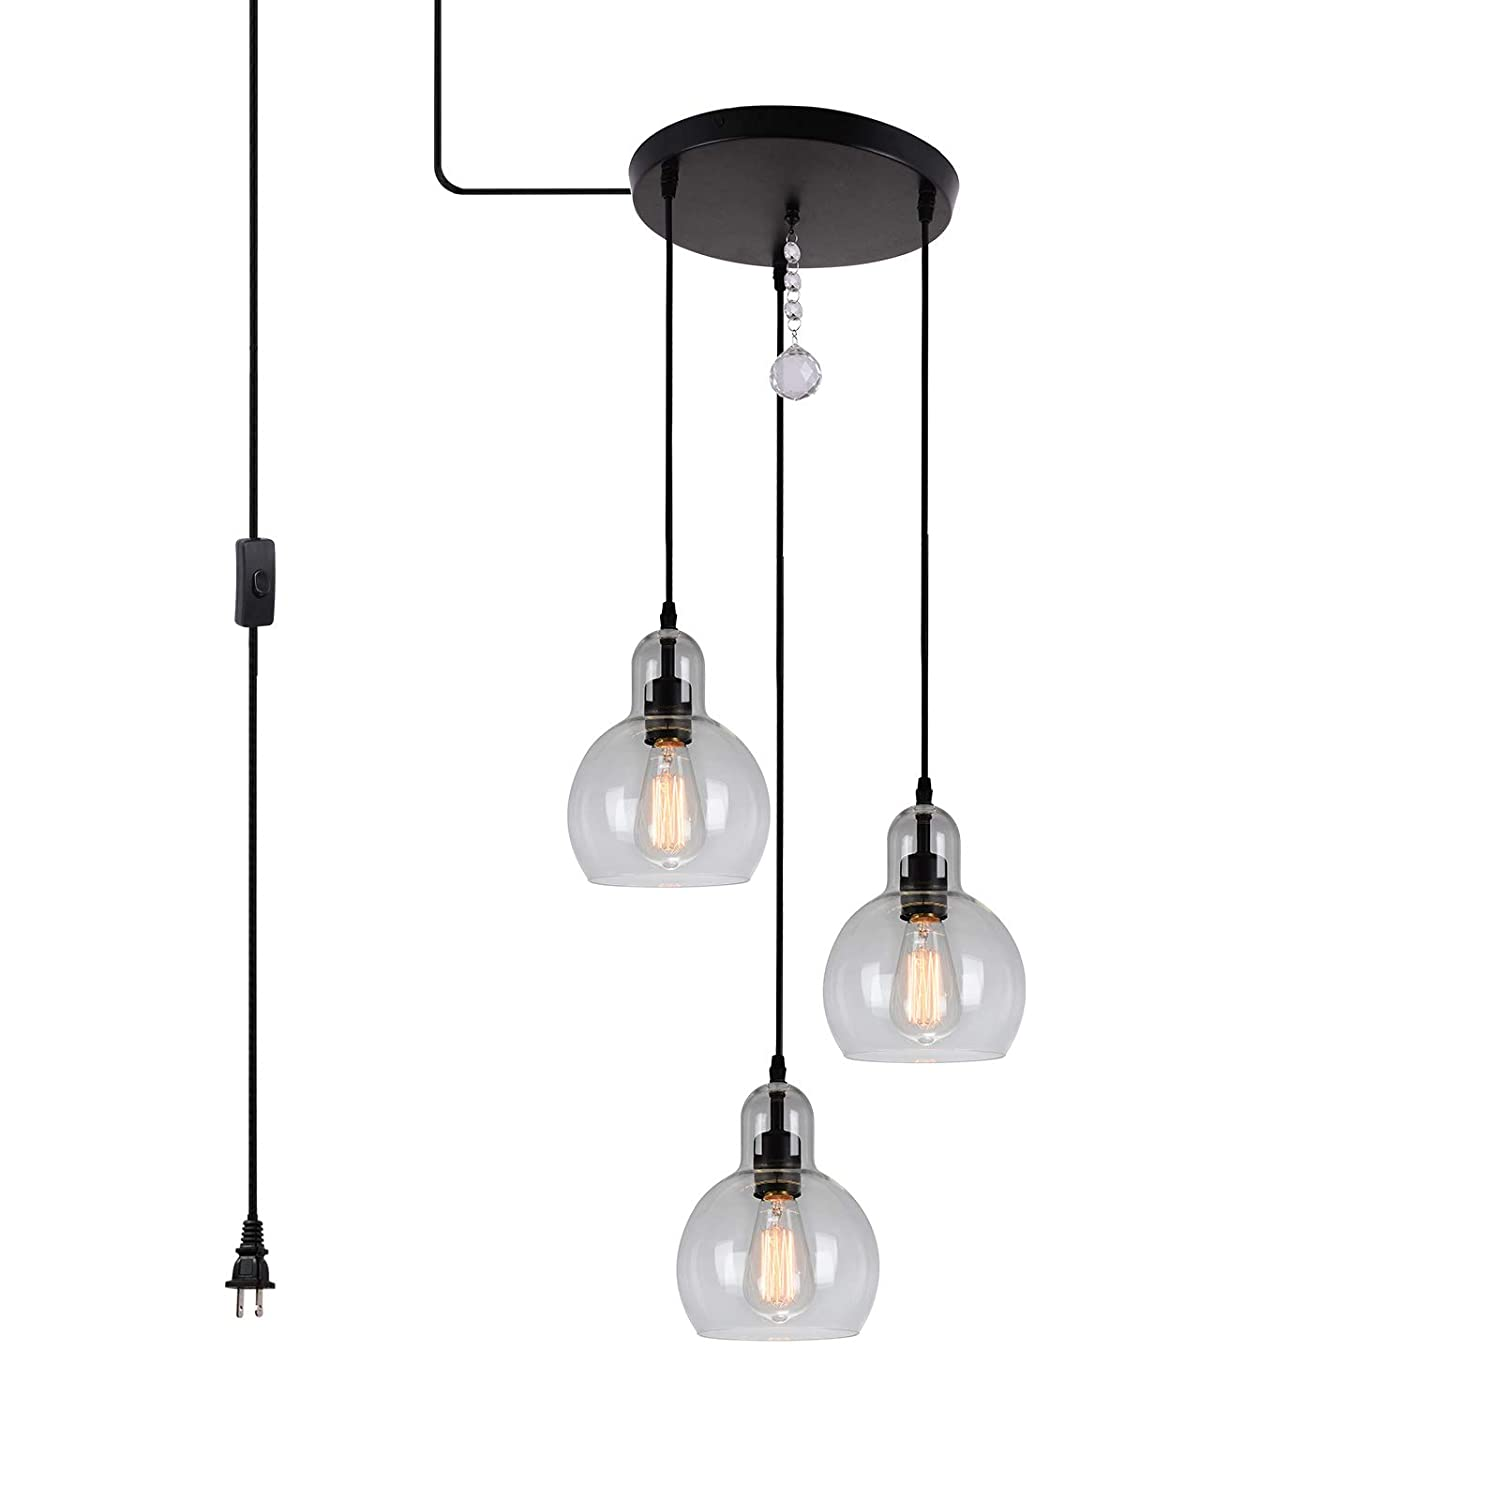 Pendant lighting plug in Living Room Hmvpl 3lights Plug In Glass Chandelier Pendant Light With 16 Ft Hanging Cord And Inline Onoff Toggle Switch Antique Lighting Fixture For Living Room Amazoncom Hmvpl 3lights Plug In Glass Chandelier Pendant Light With 16 Ft